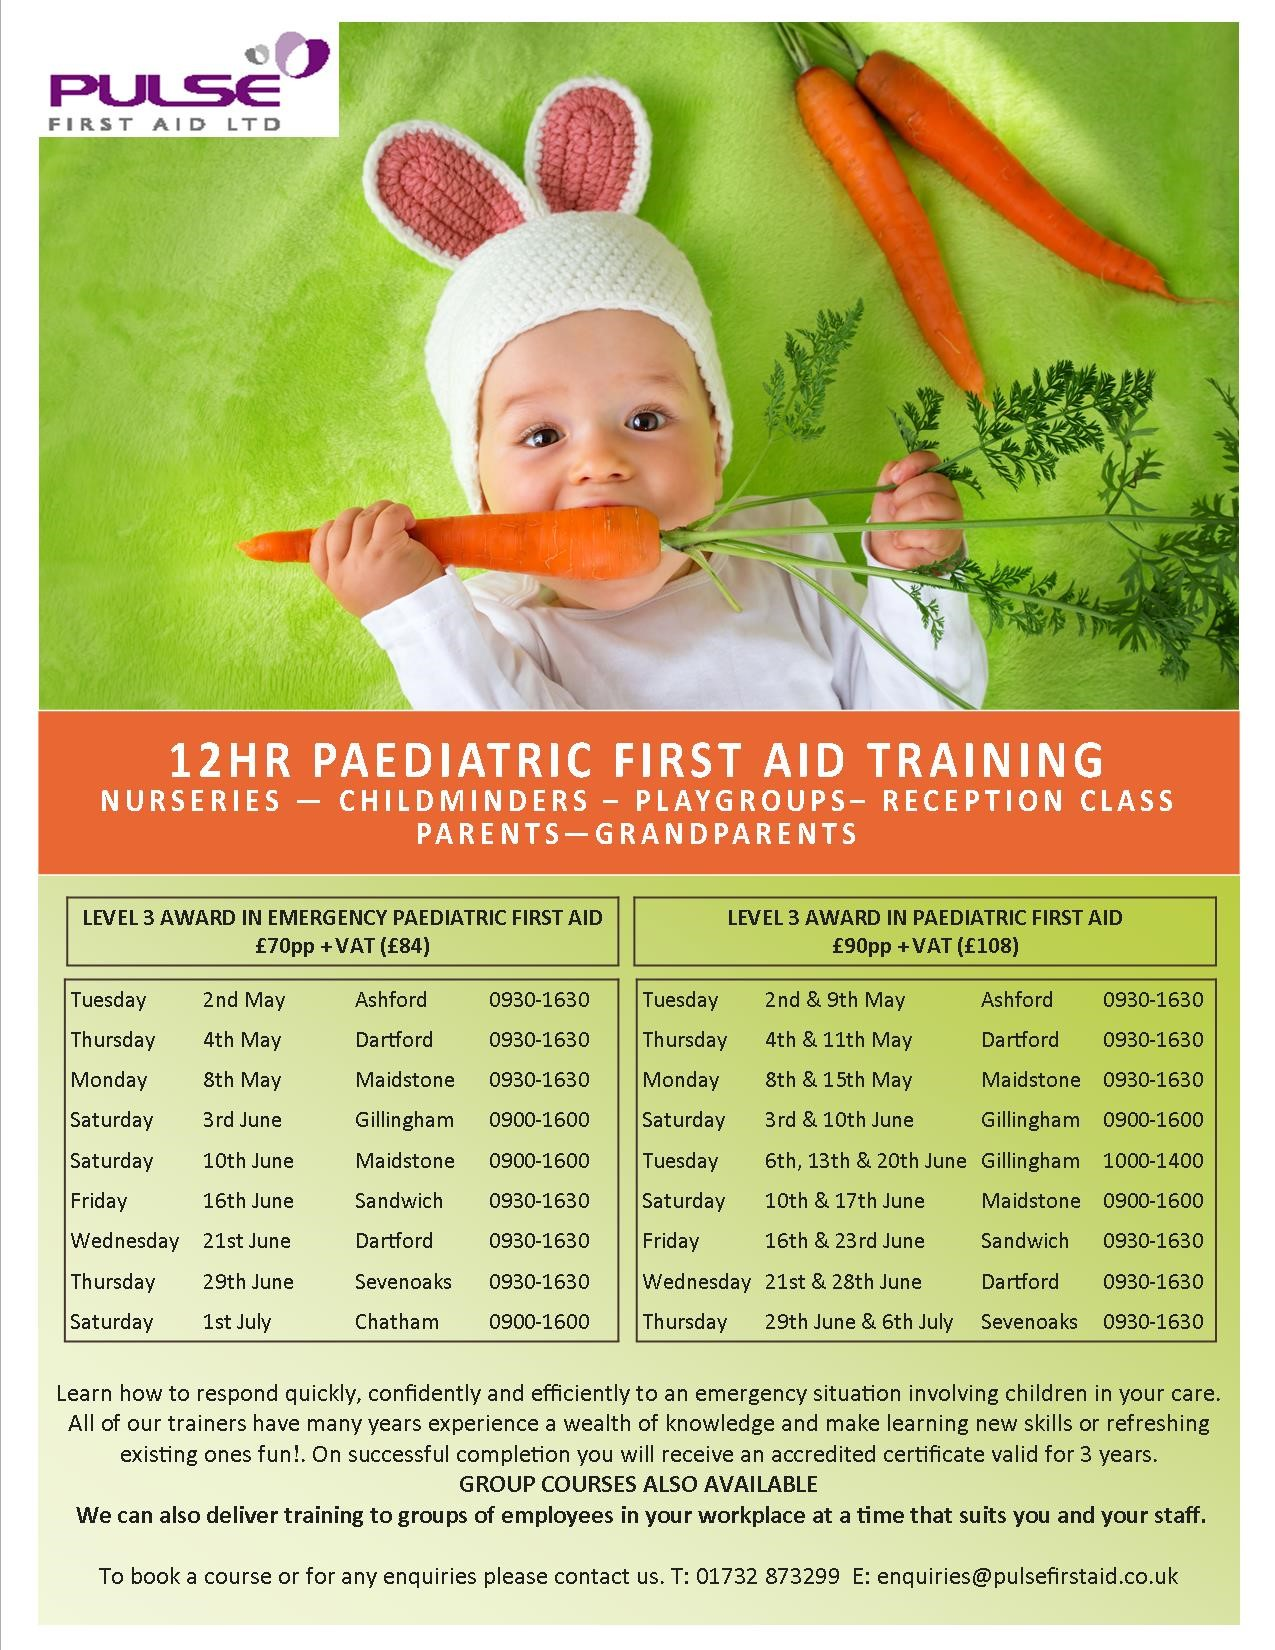 Paediatric First Aid Training Course Dates  - Spring 2017